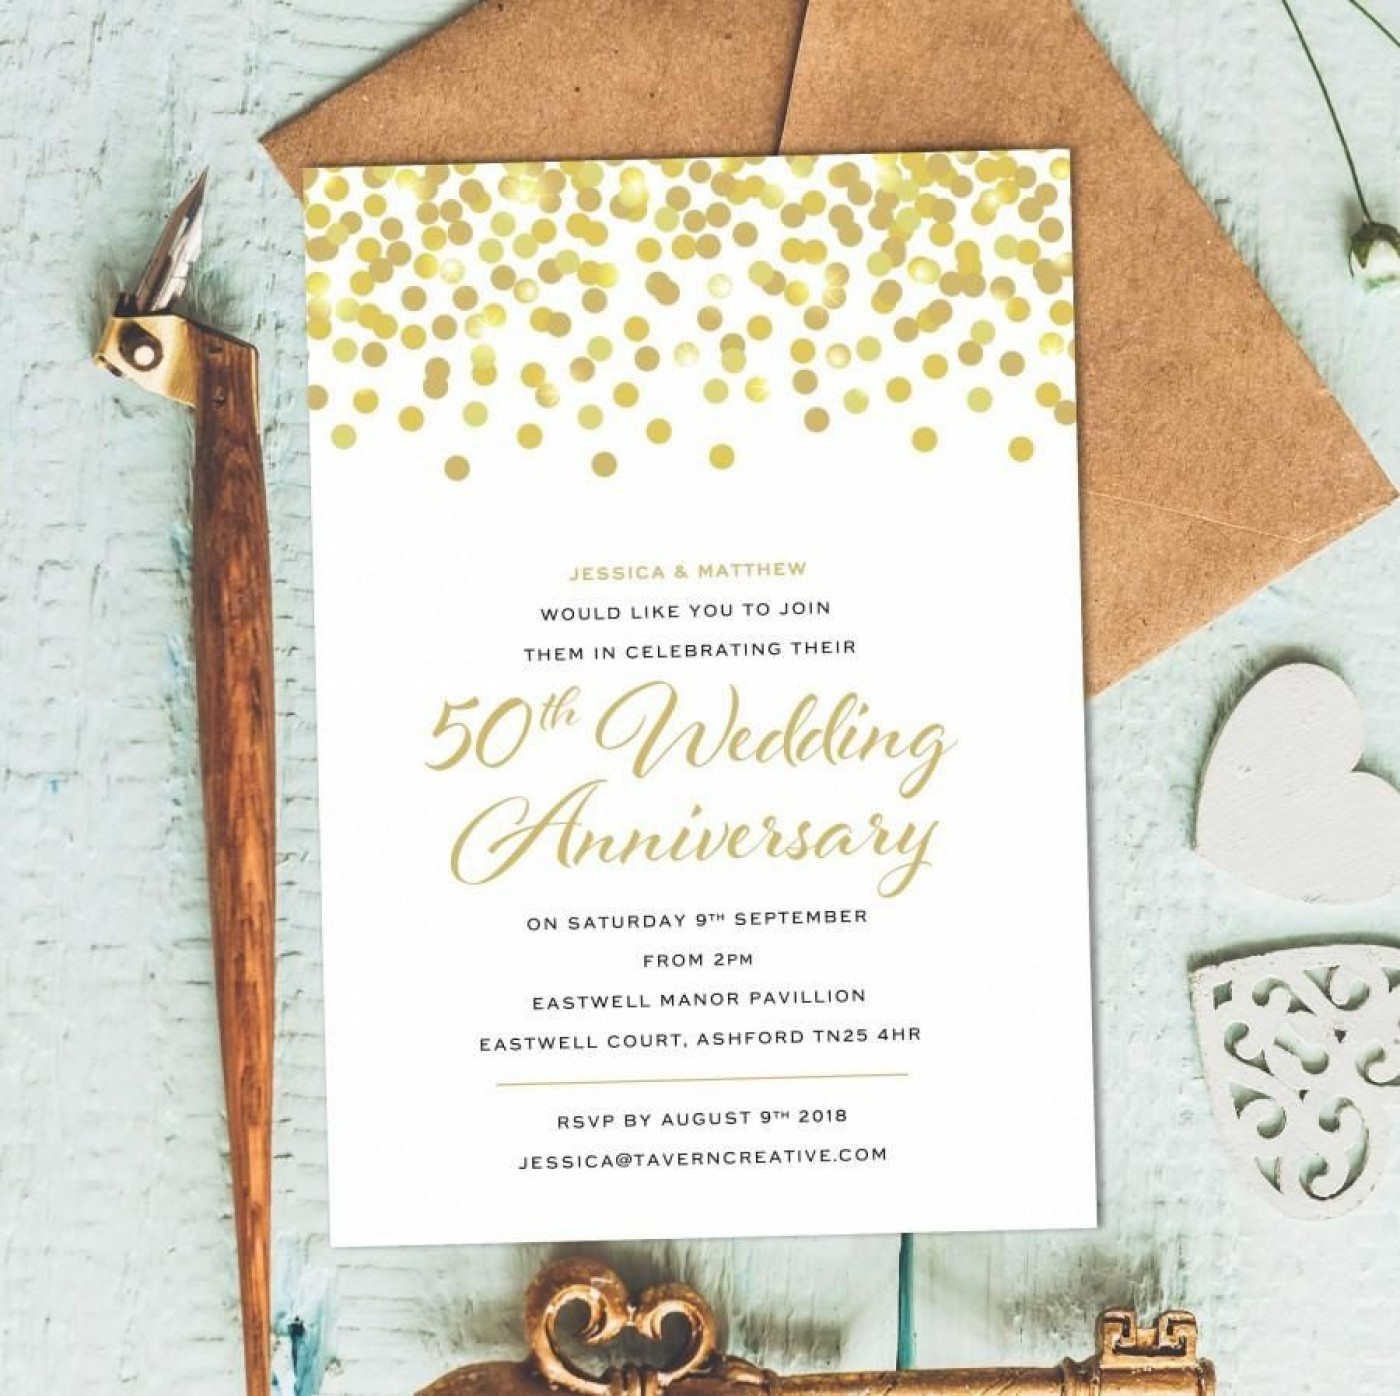 001 Stunning 50th Anniversary Party Invitation Template High Resolution  Wedding Free Download Microsoft Word1400